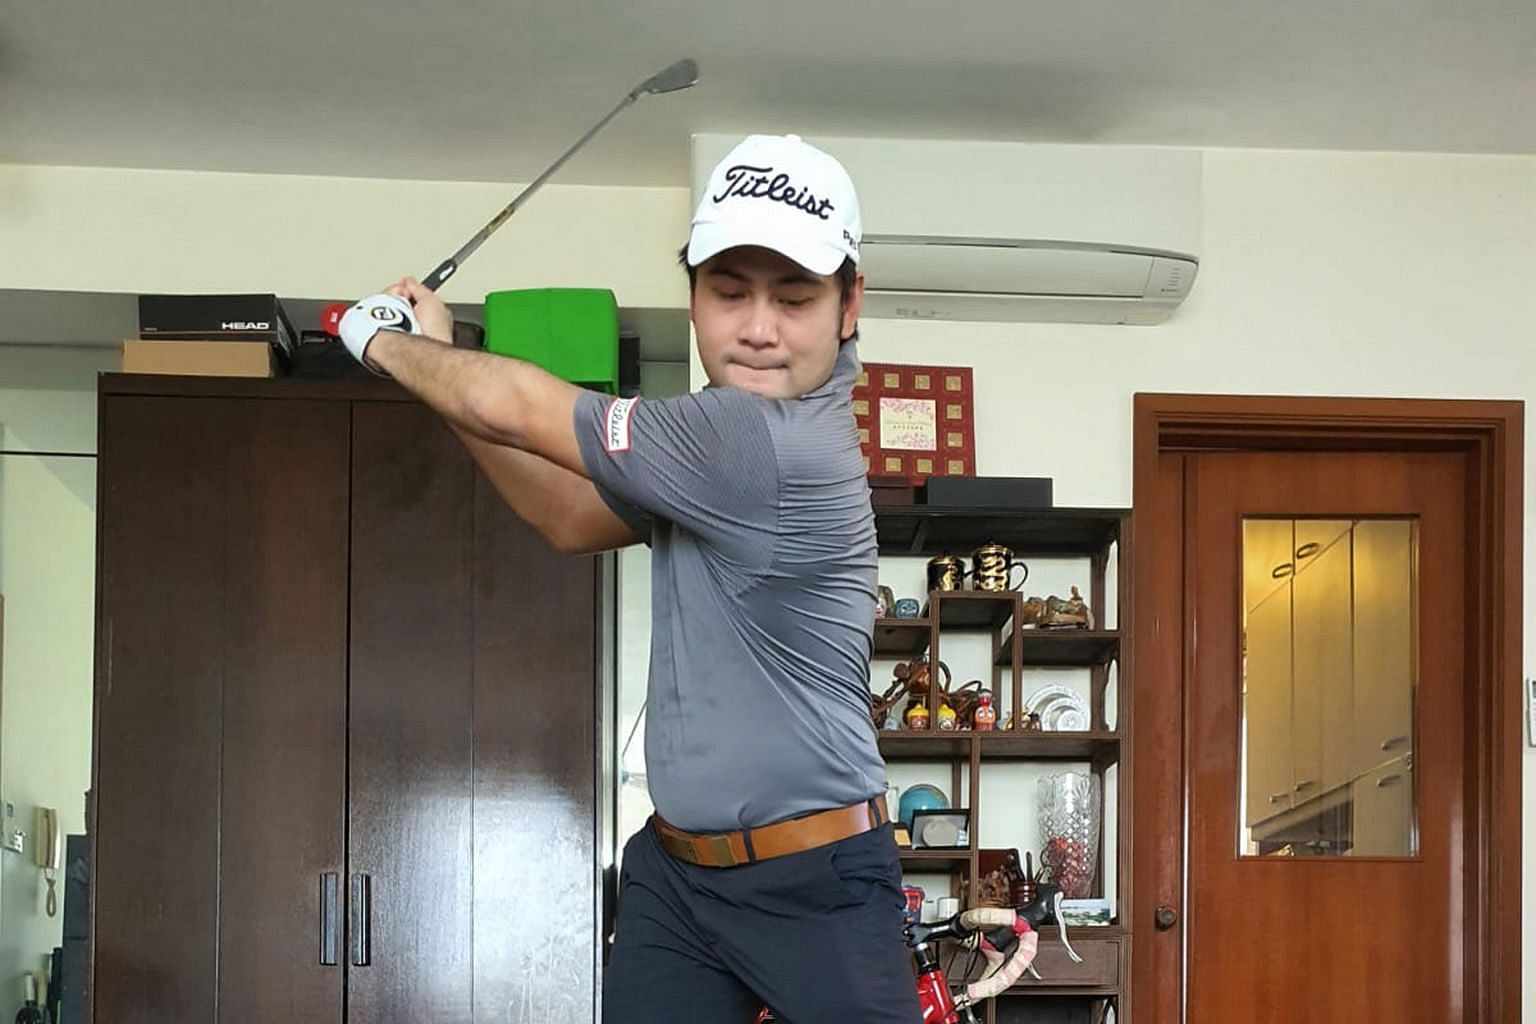 Stuck at home with the golf tour on hold and courses closed, Koh Dengshan practised his swing with a foam ball and exercised almost every day using his stationary bicycle and TRX resistance bands.